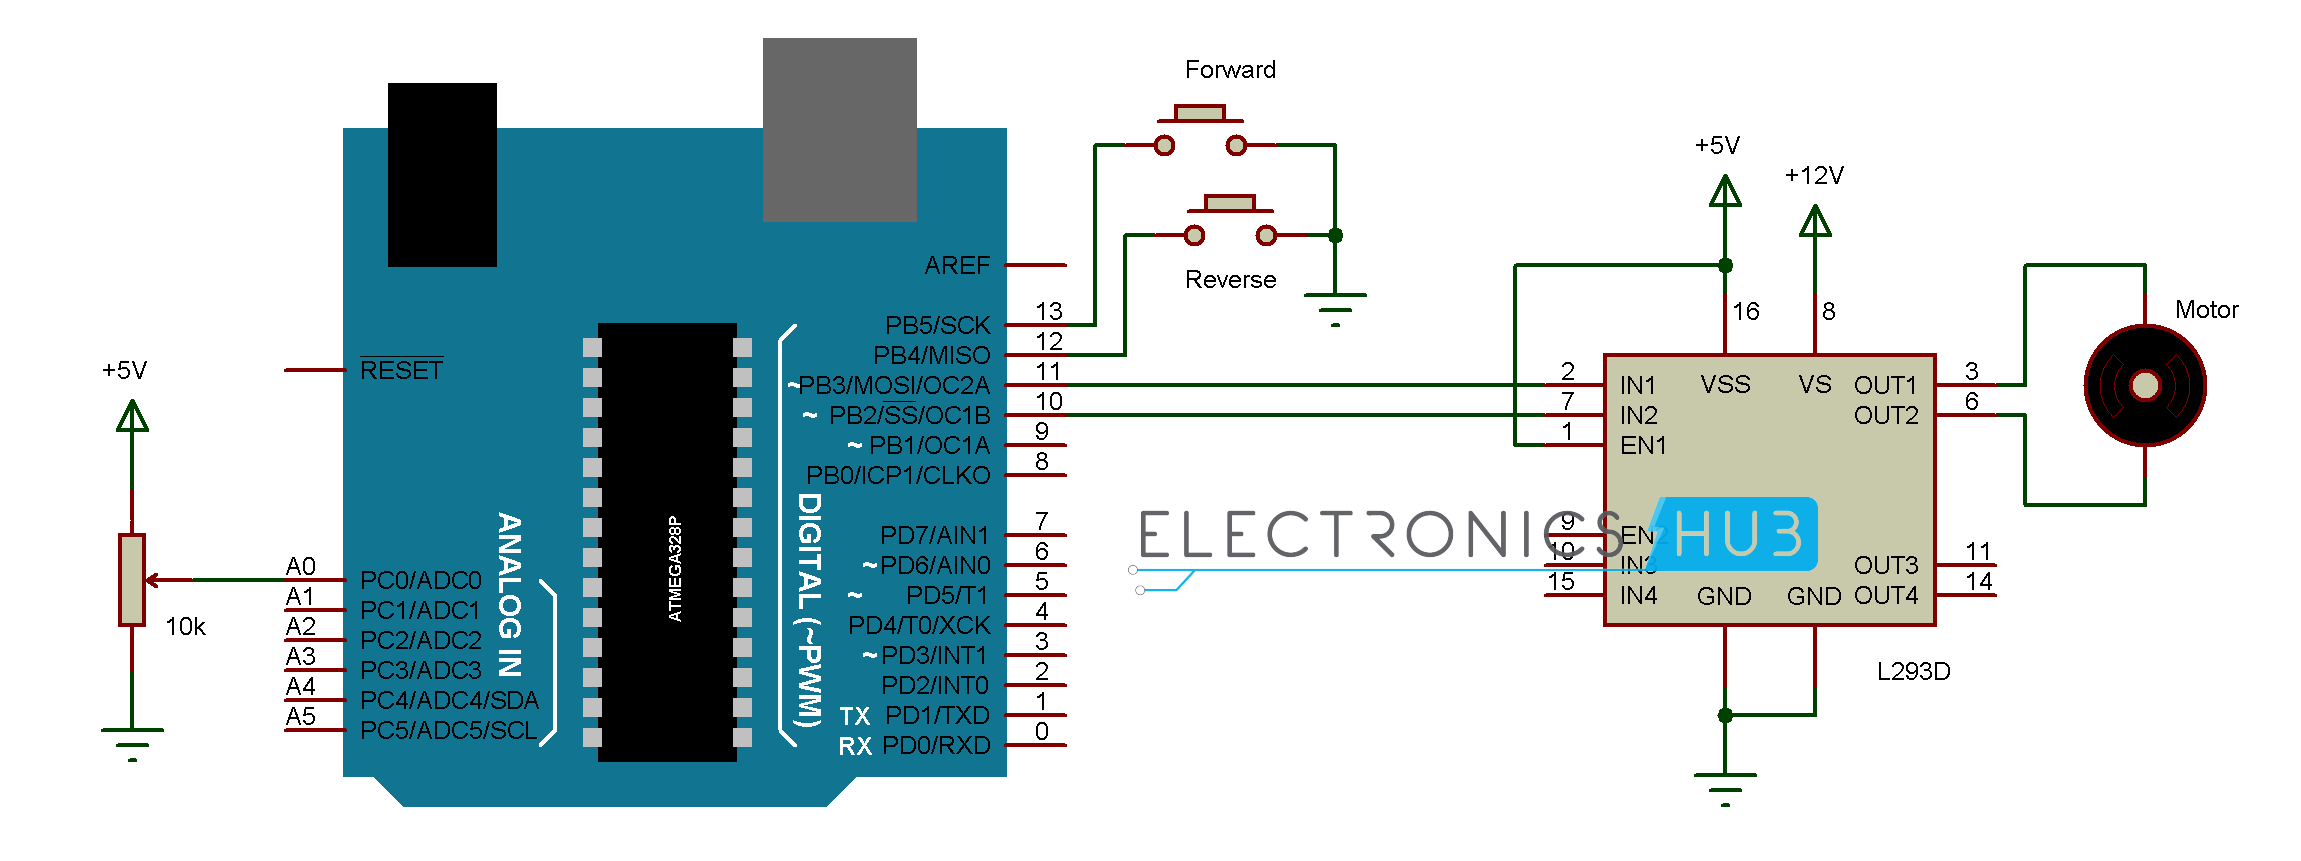 Small Dc Motor Control Circuit Diagram - Wiring Diagram Filter